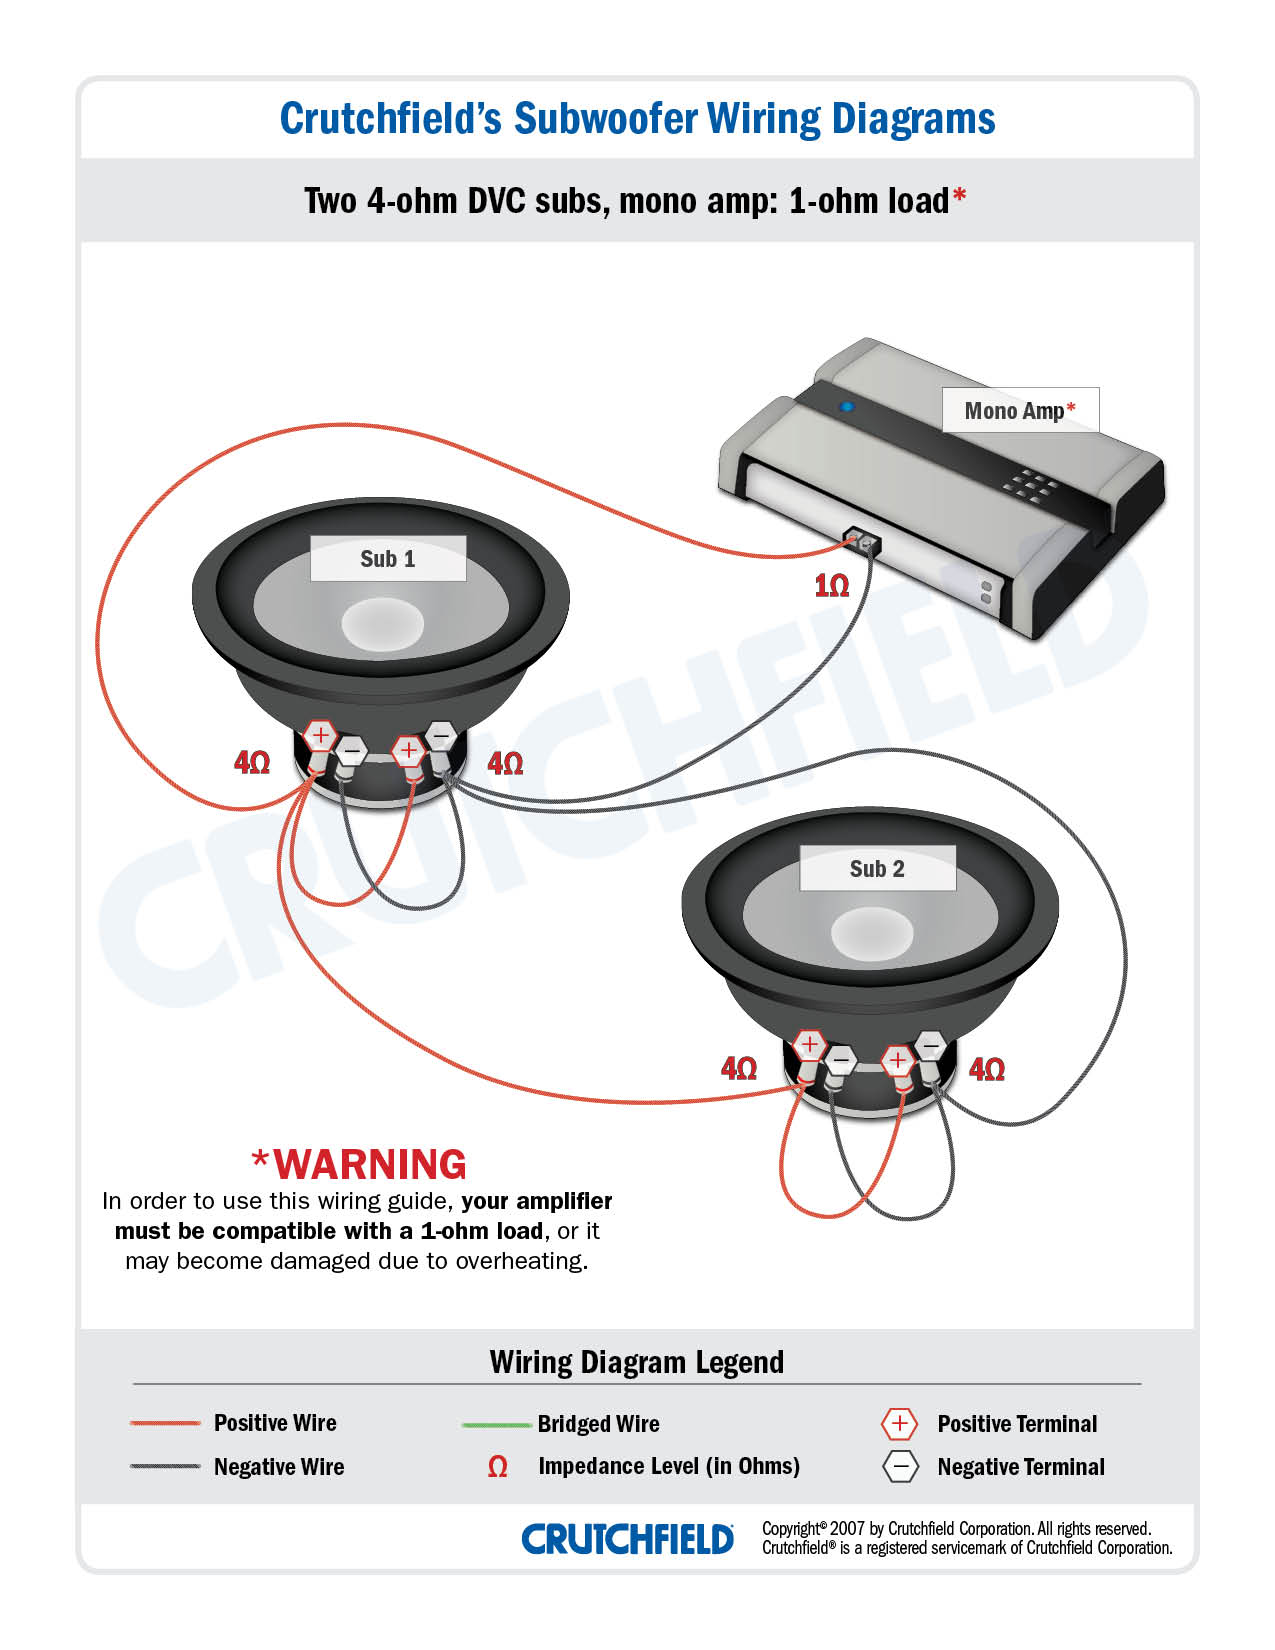 multiple amp wiring diagram 50 amp gfci spa amp wiring diagram 3000 subs how should i wire these subs with this amp? #8